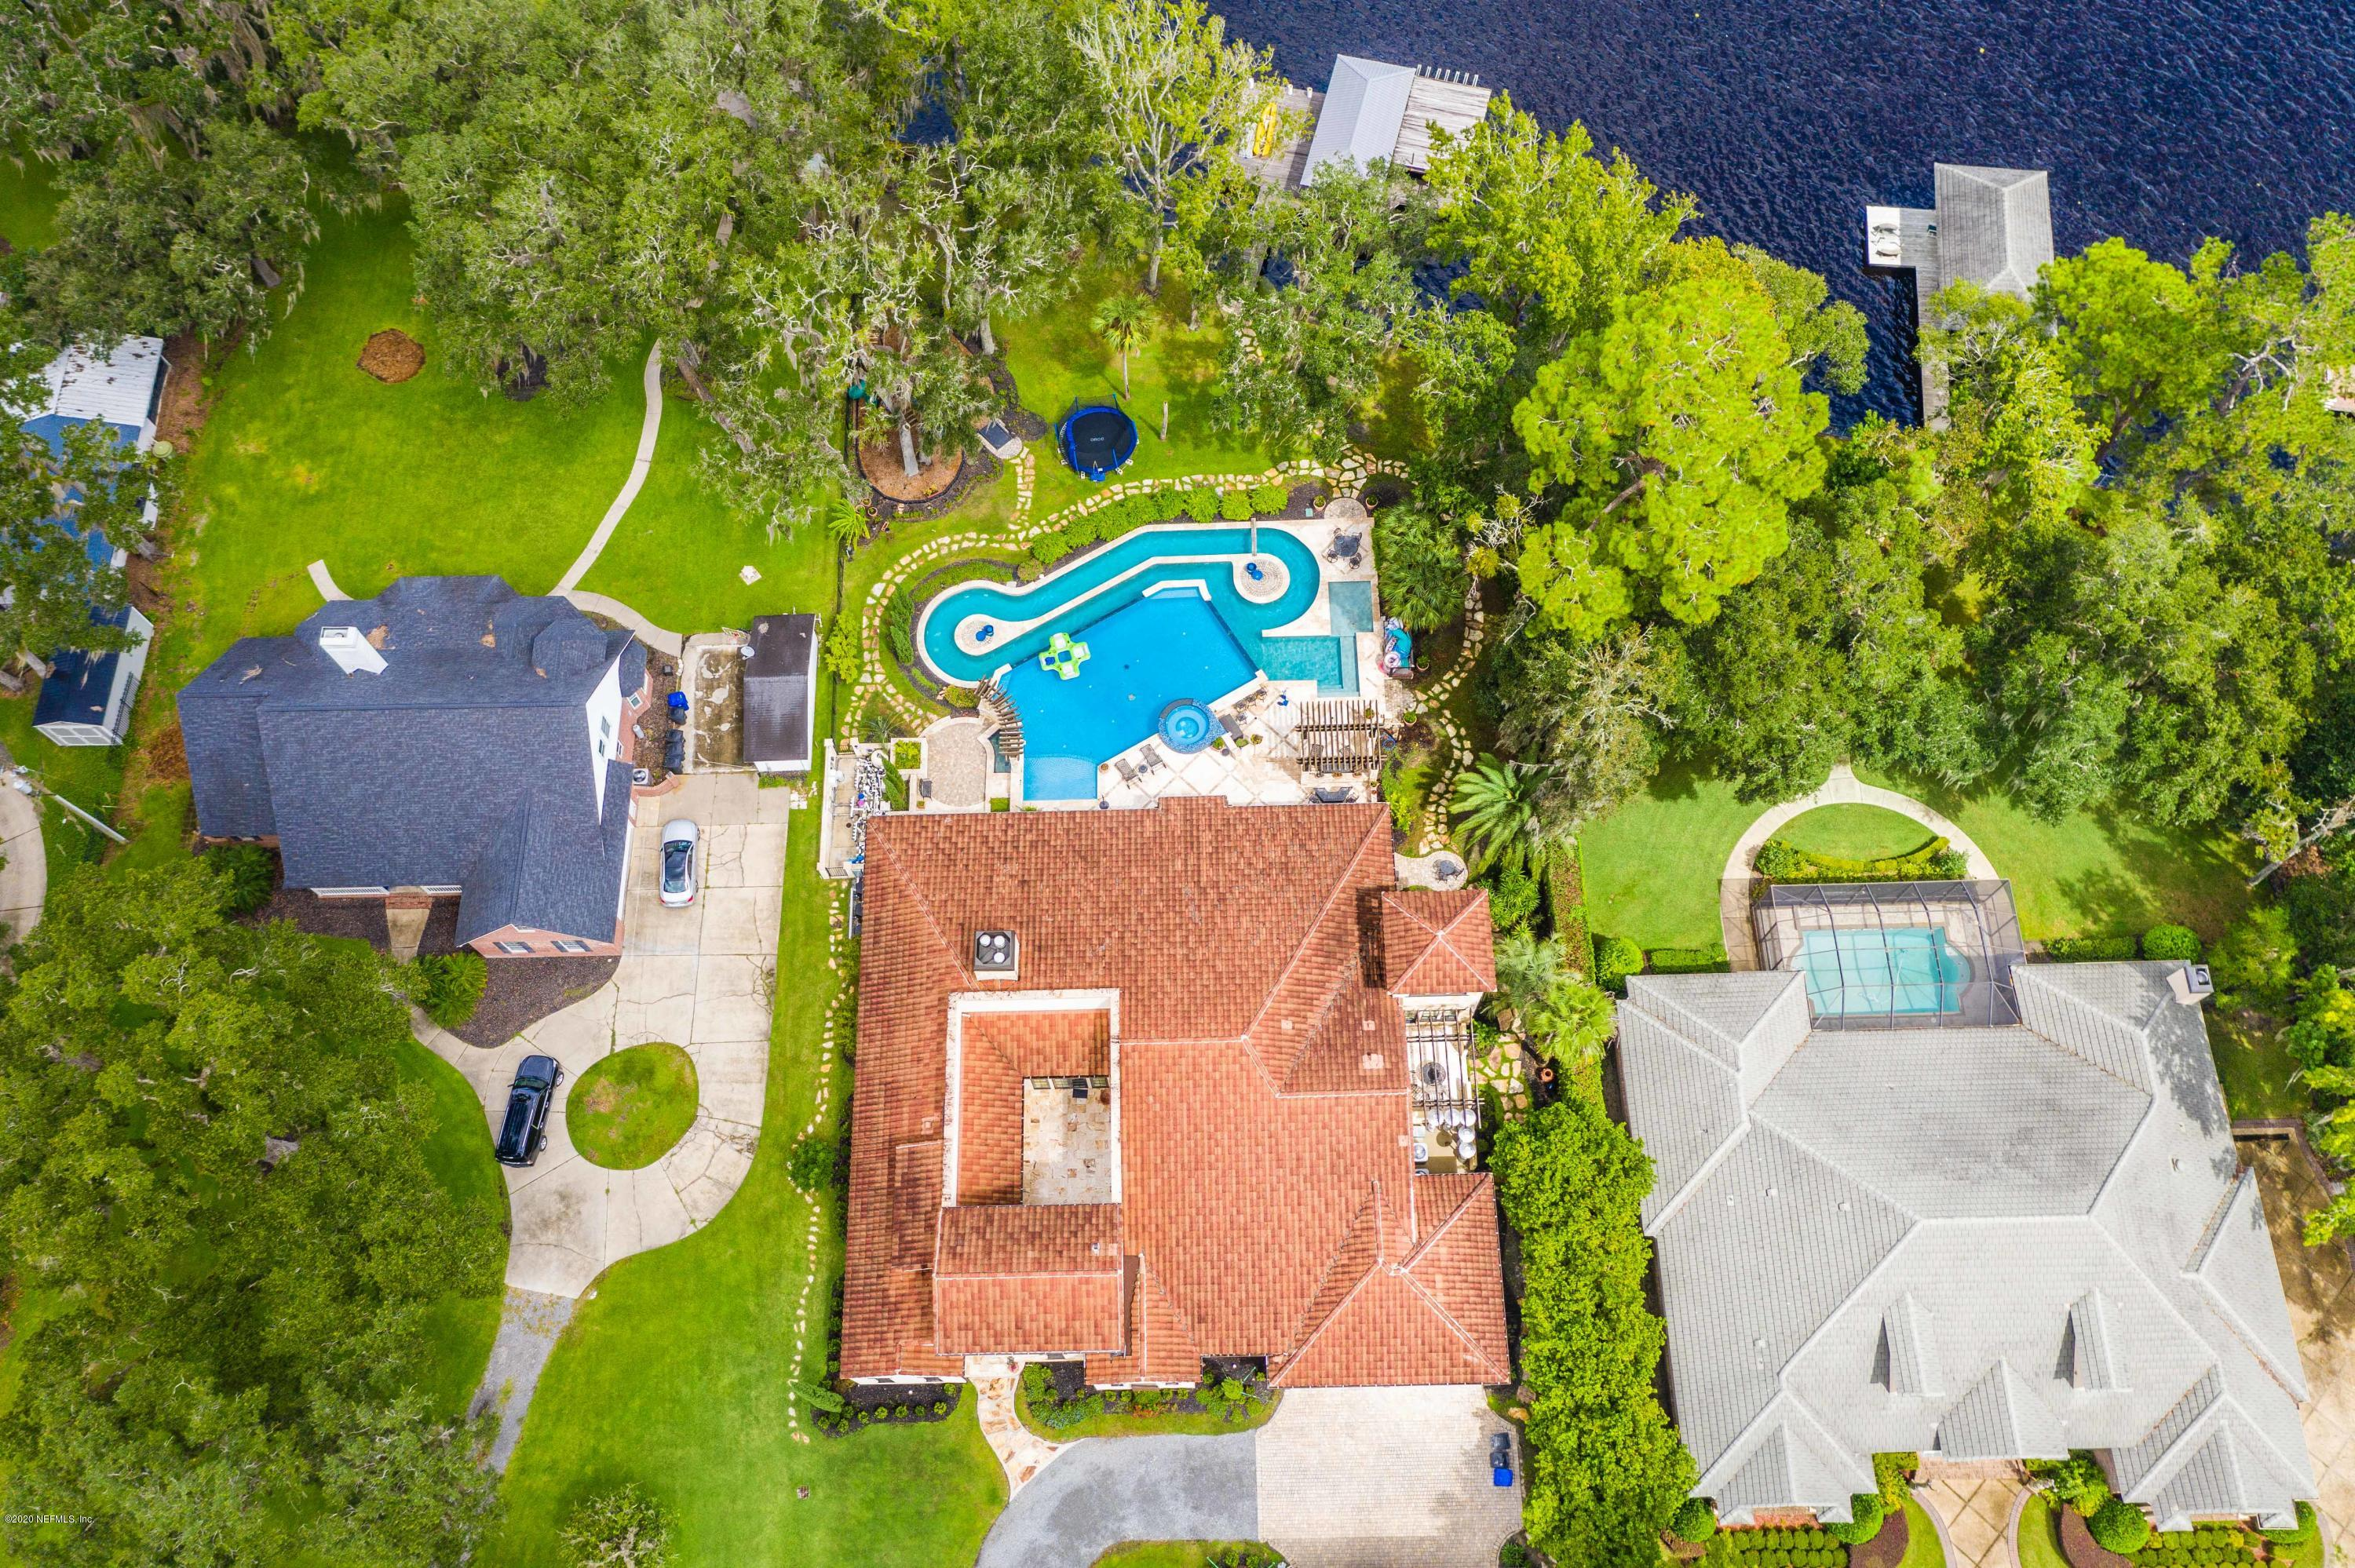 1821 BISHOP ESTATES, ST JOHNS, FLORIDA 32259, 5 Bedrooms Bedrooms, ,7 BathroomsBathrooms,Residential,For sale,BISHOP ESTATES,1069619